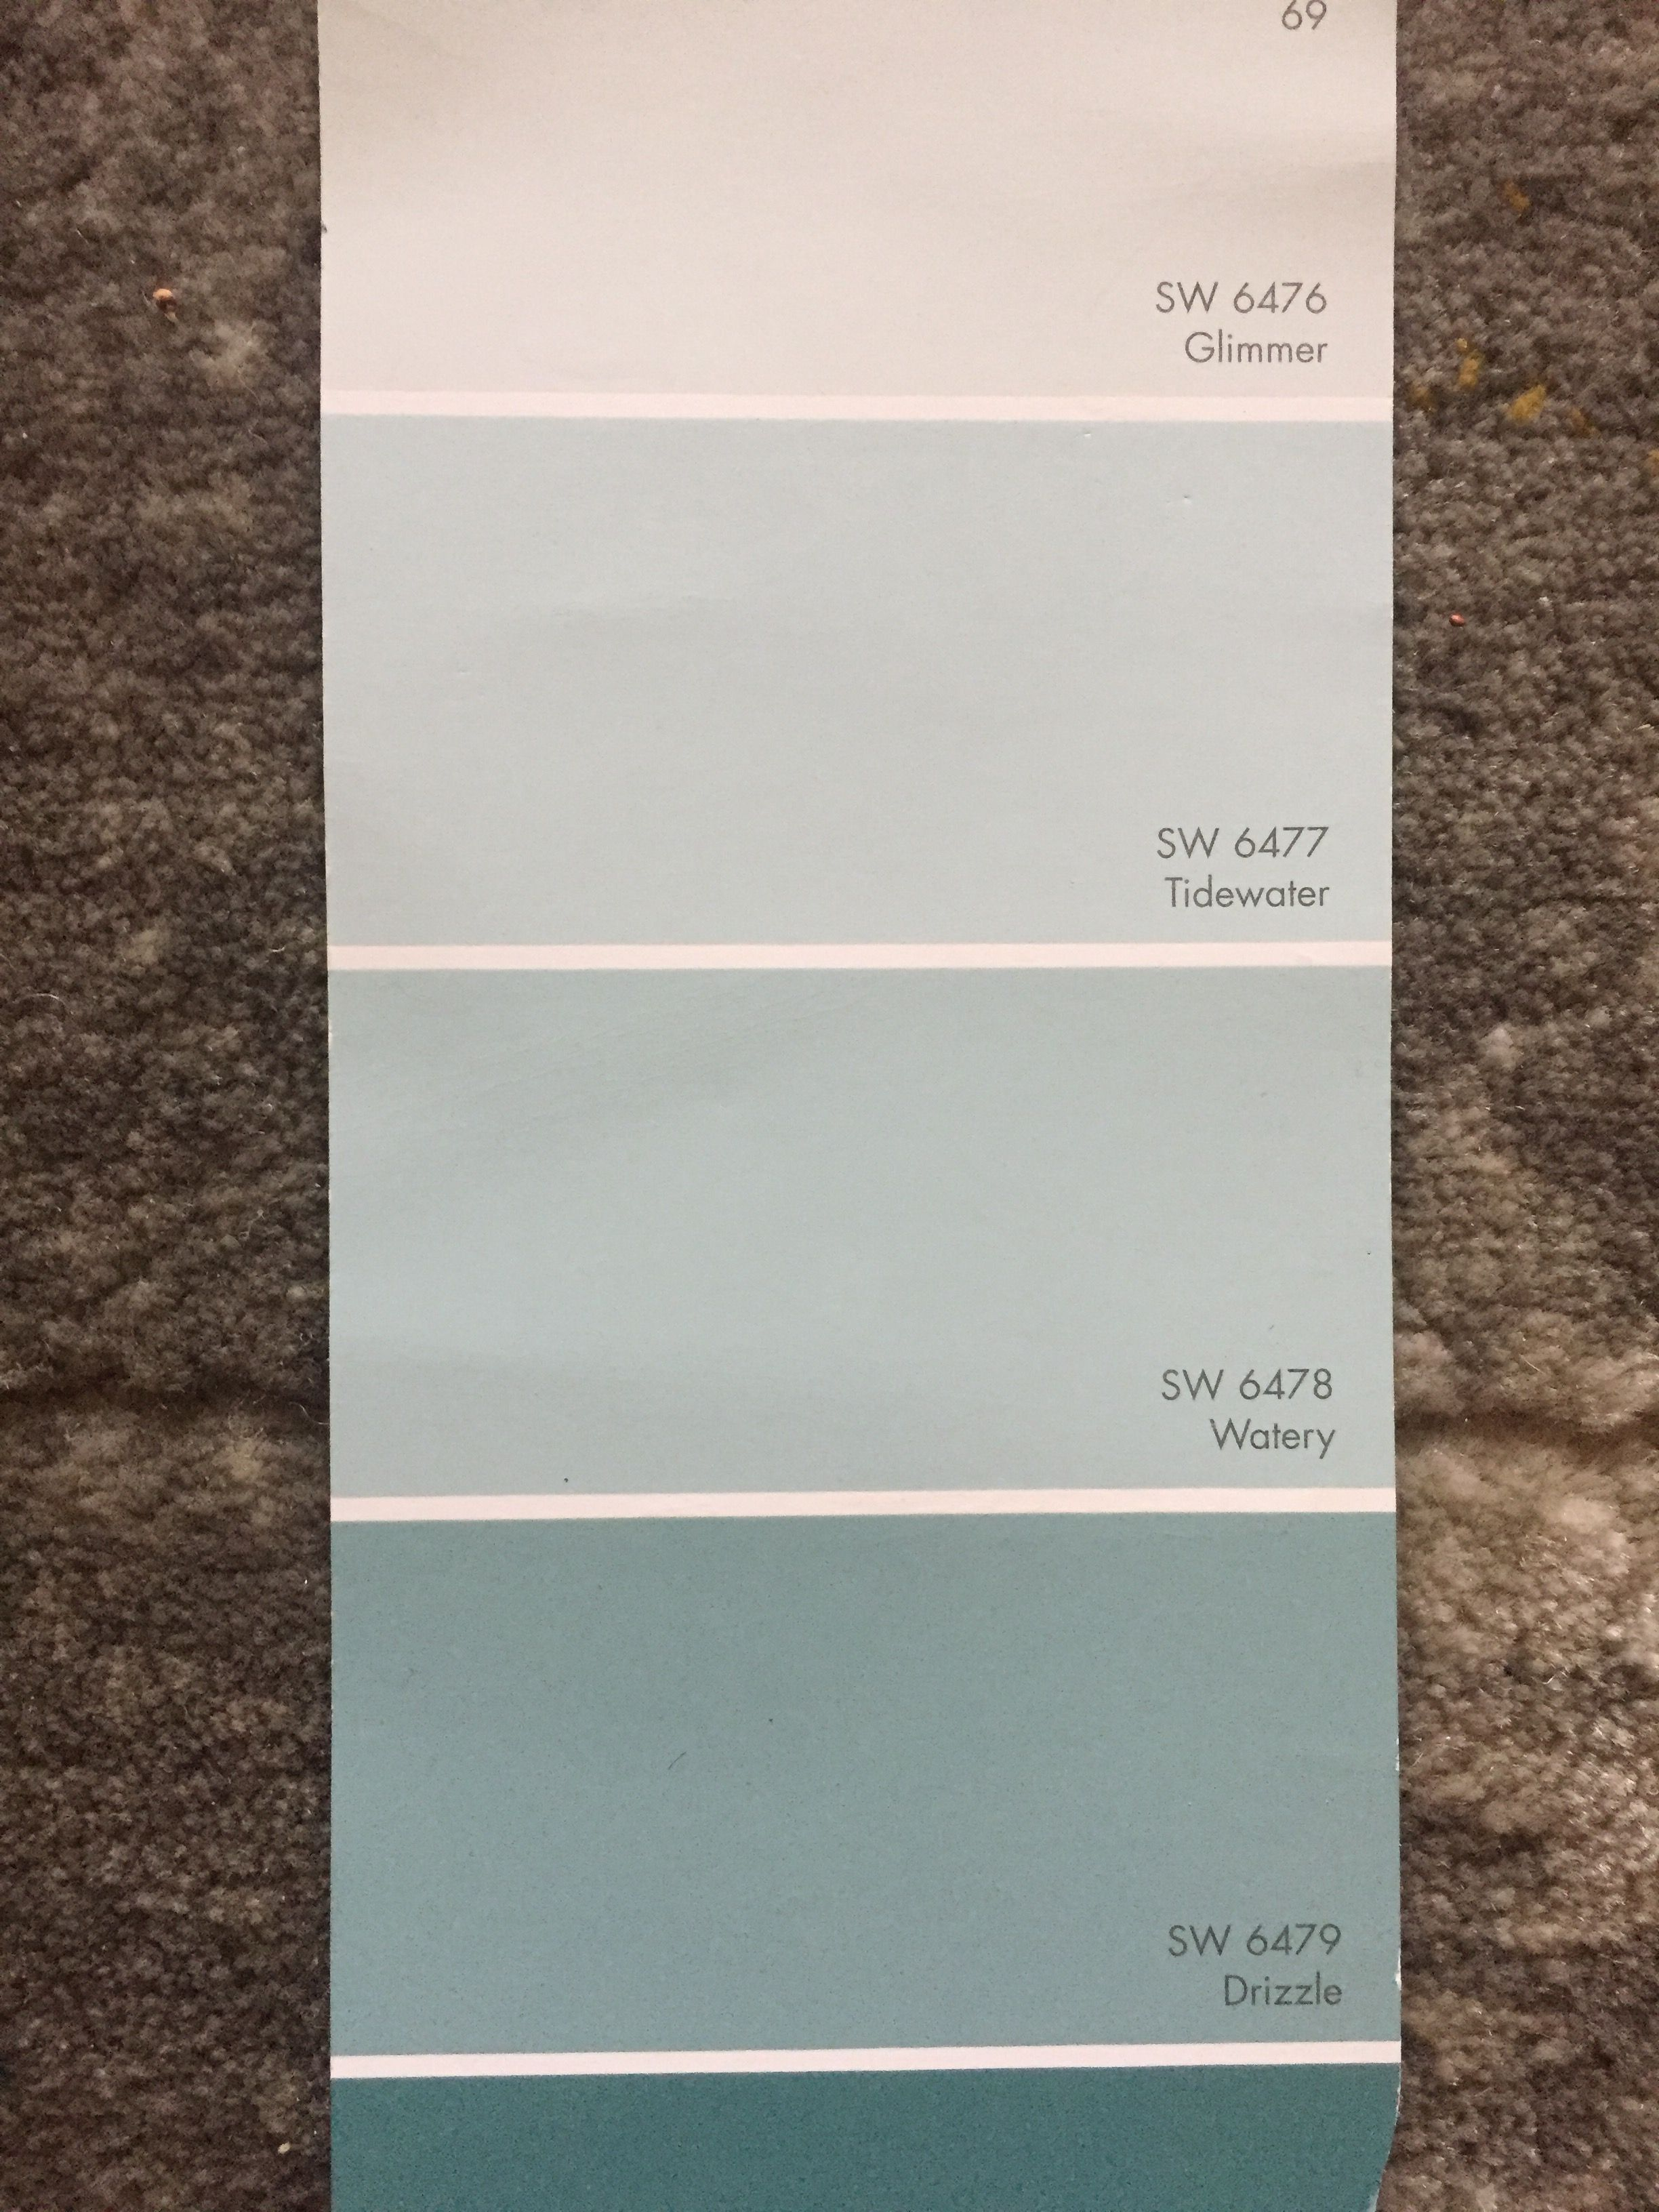 Sherwin Williams Glimmer Tidewater Watery Drizzle Paint